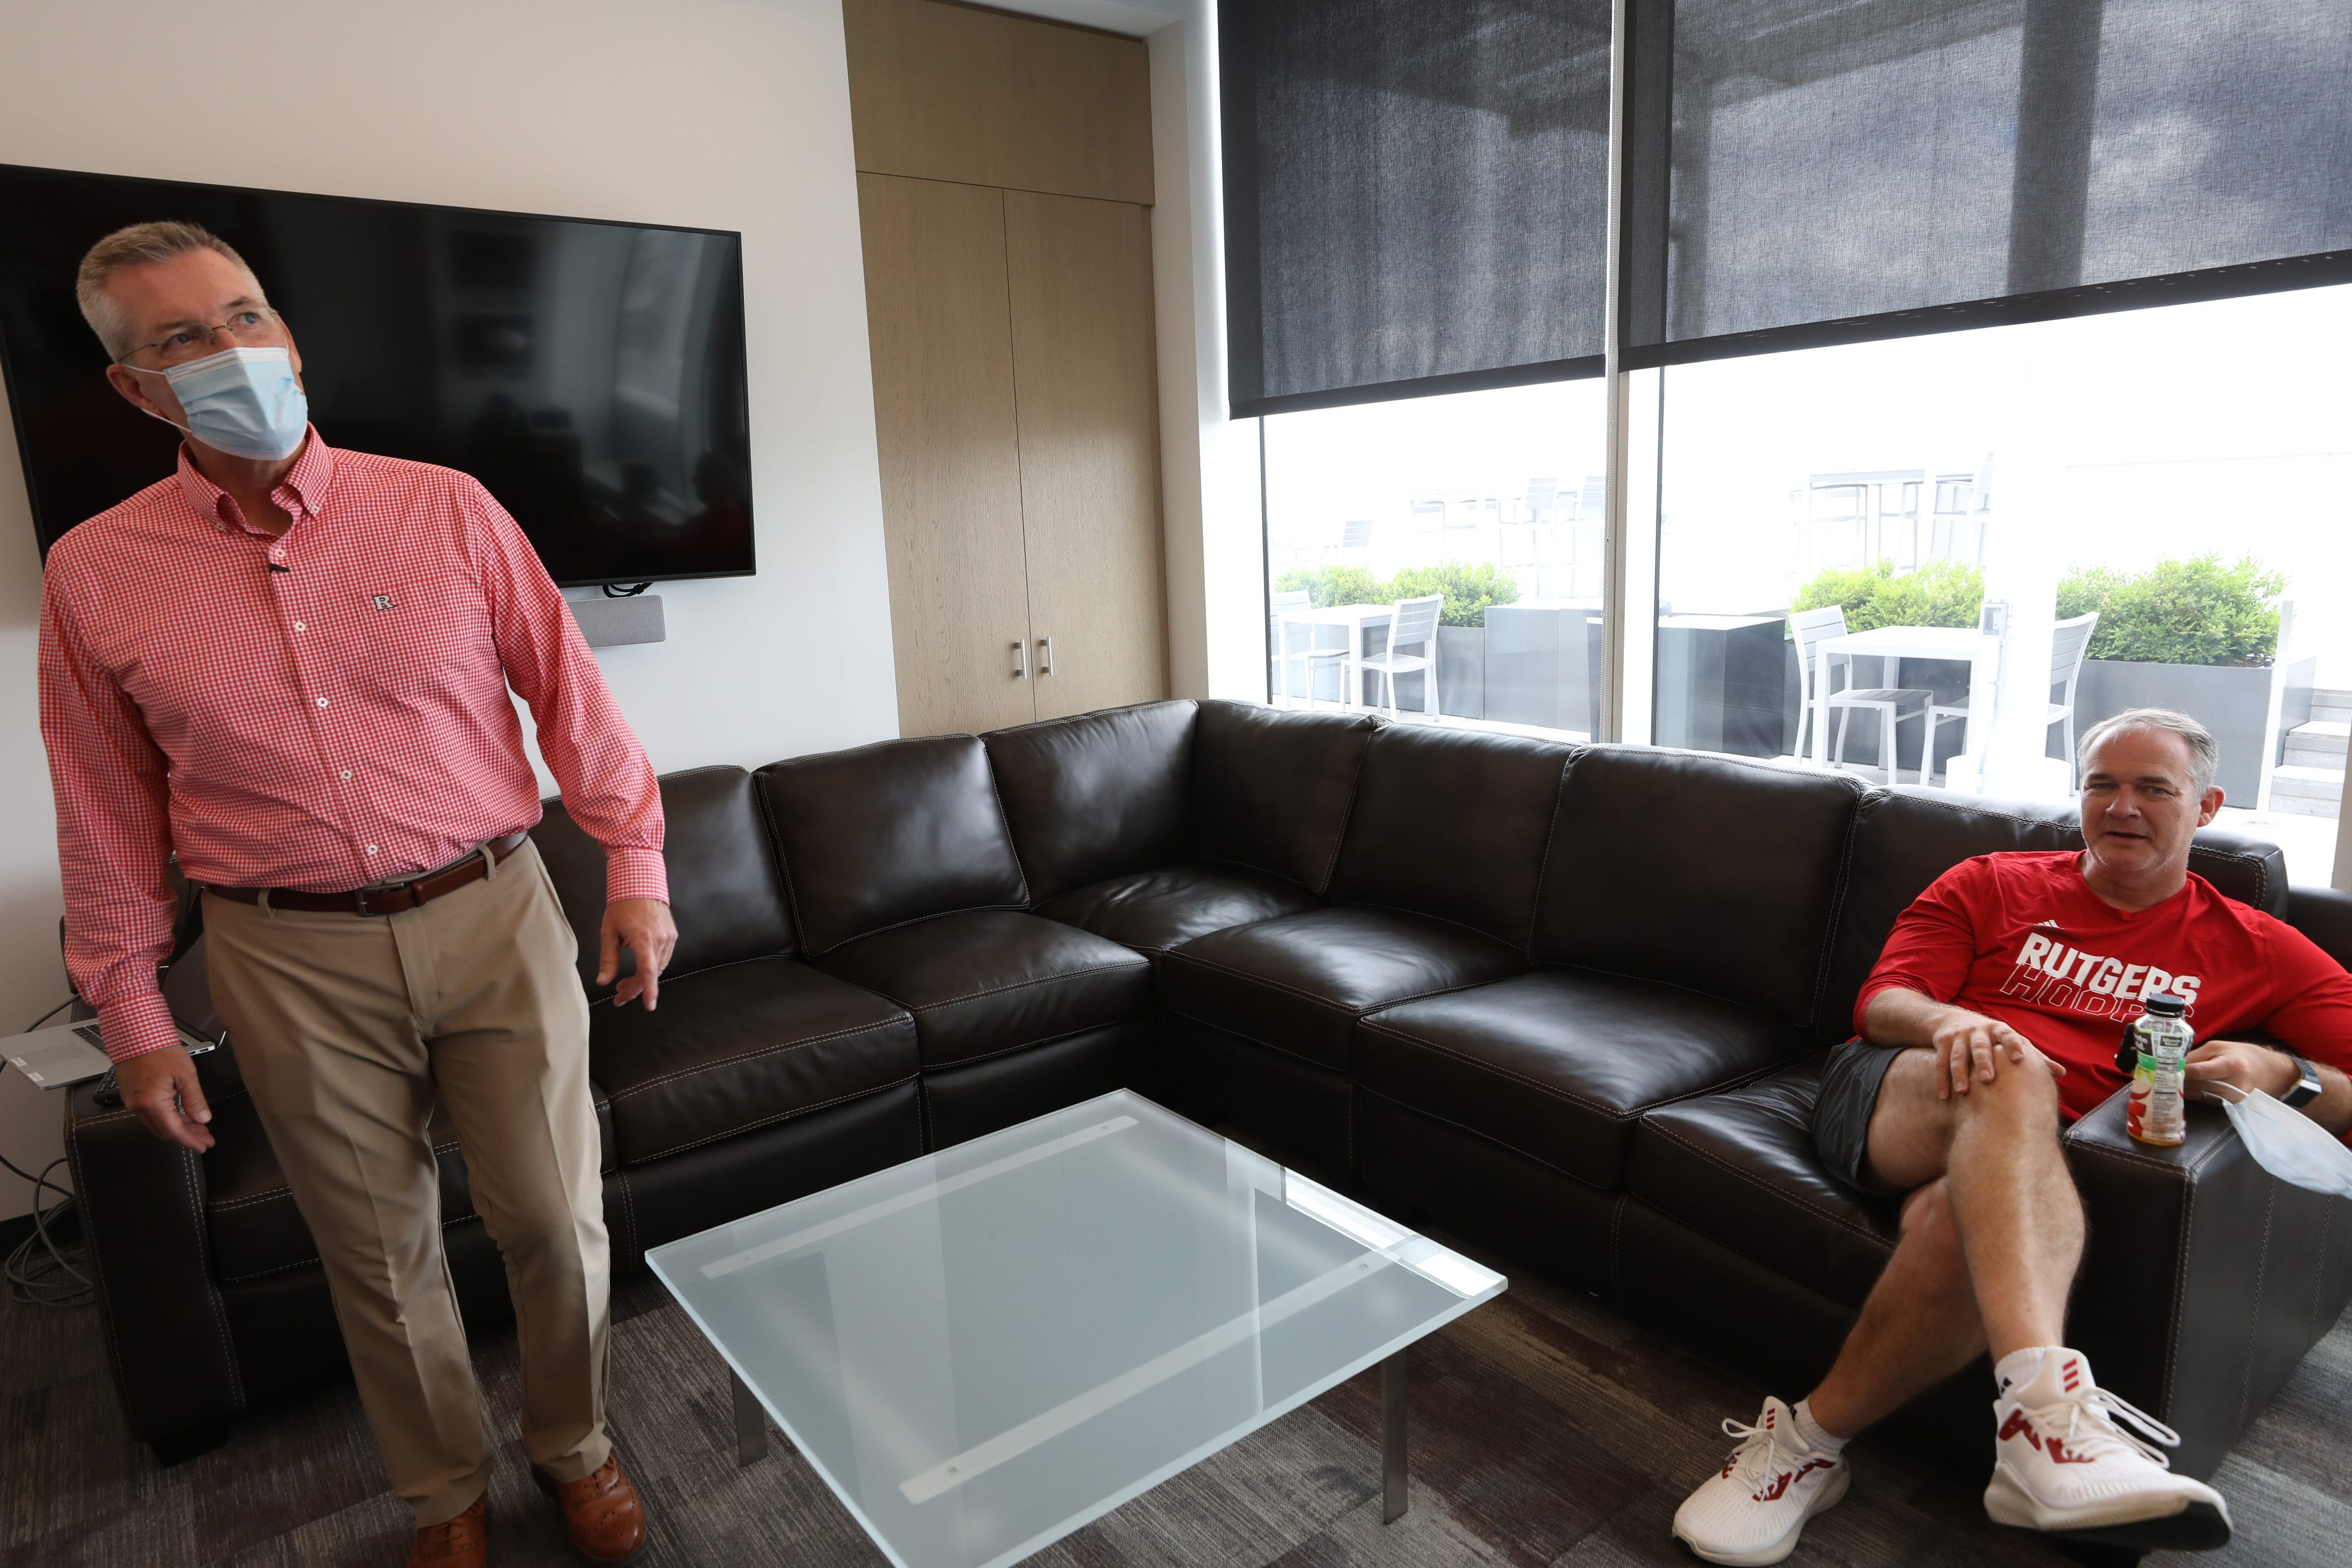 Rutgers Athletic Director Pat Hobbs with men's basketball coach Steve Pikiell in Pikiell's office in the RWJBarnabas Health Athletic Performance Center, one of two new athletic facilities on the campus of Rutgers University.